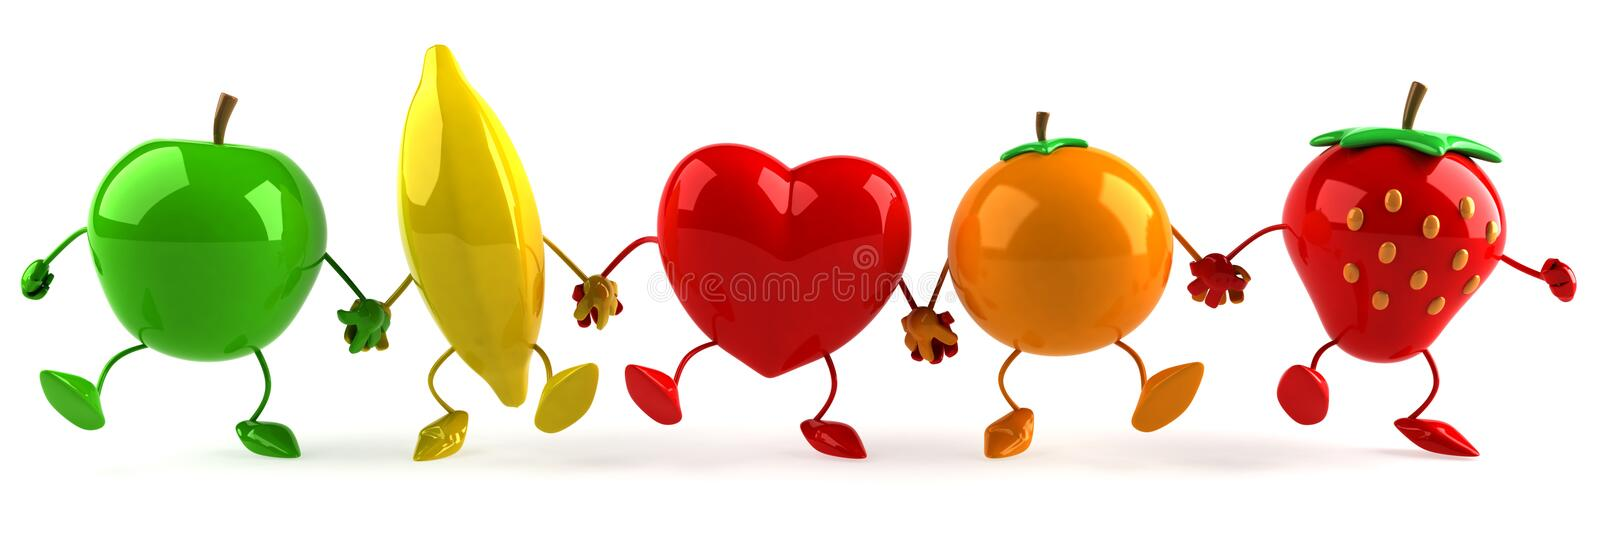 Fruits and heart stock illustration